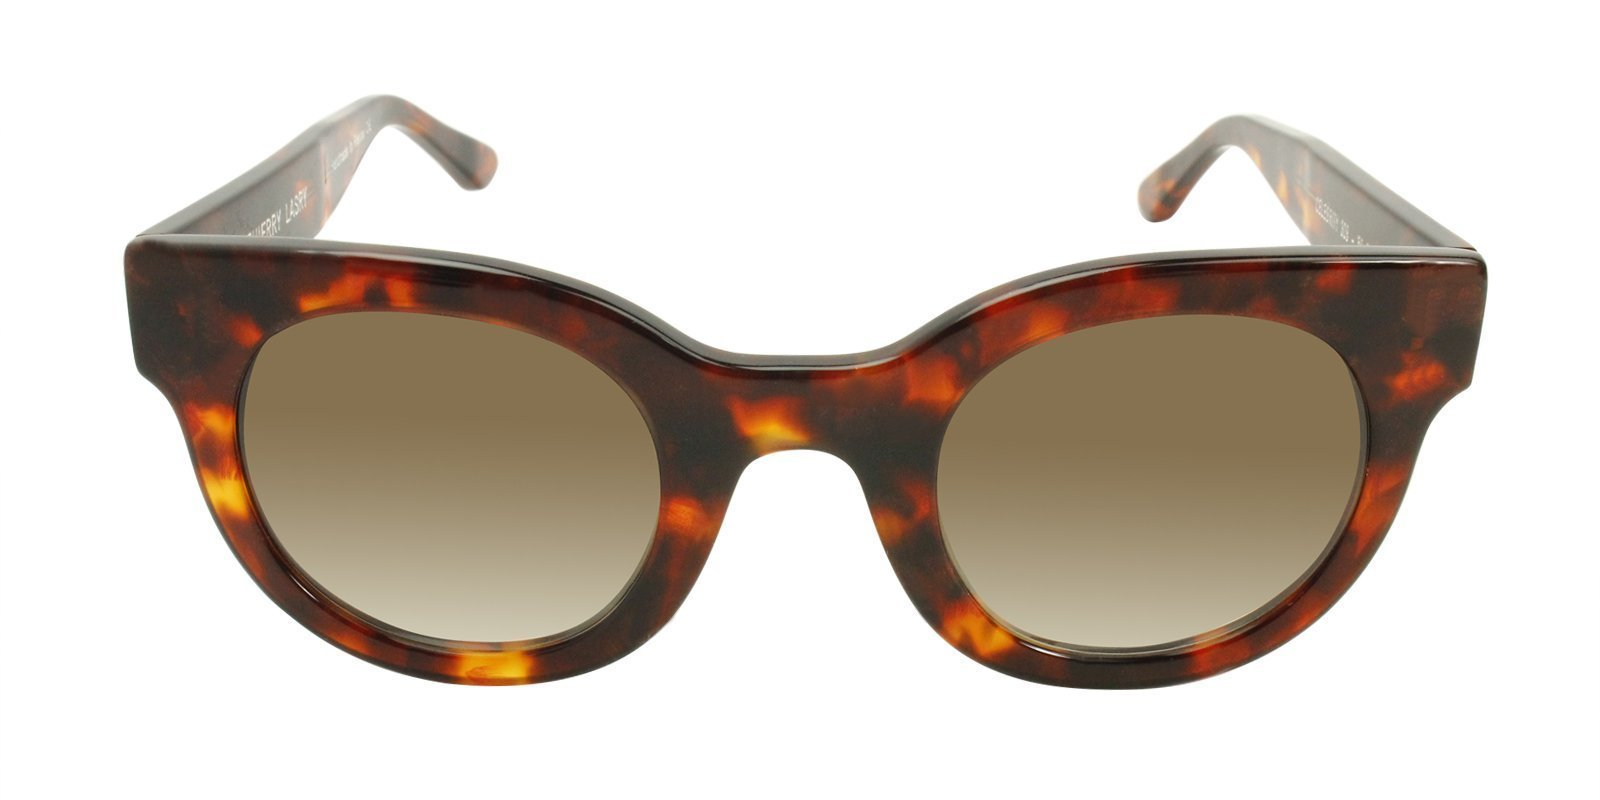 Thierry Lasry - Celebrity Tortoise Oval Women Sunglasses - 50mm-Sunglasses-Designer Eyes